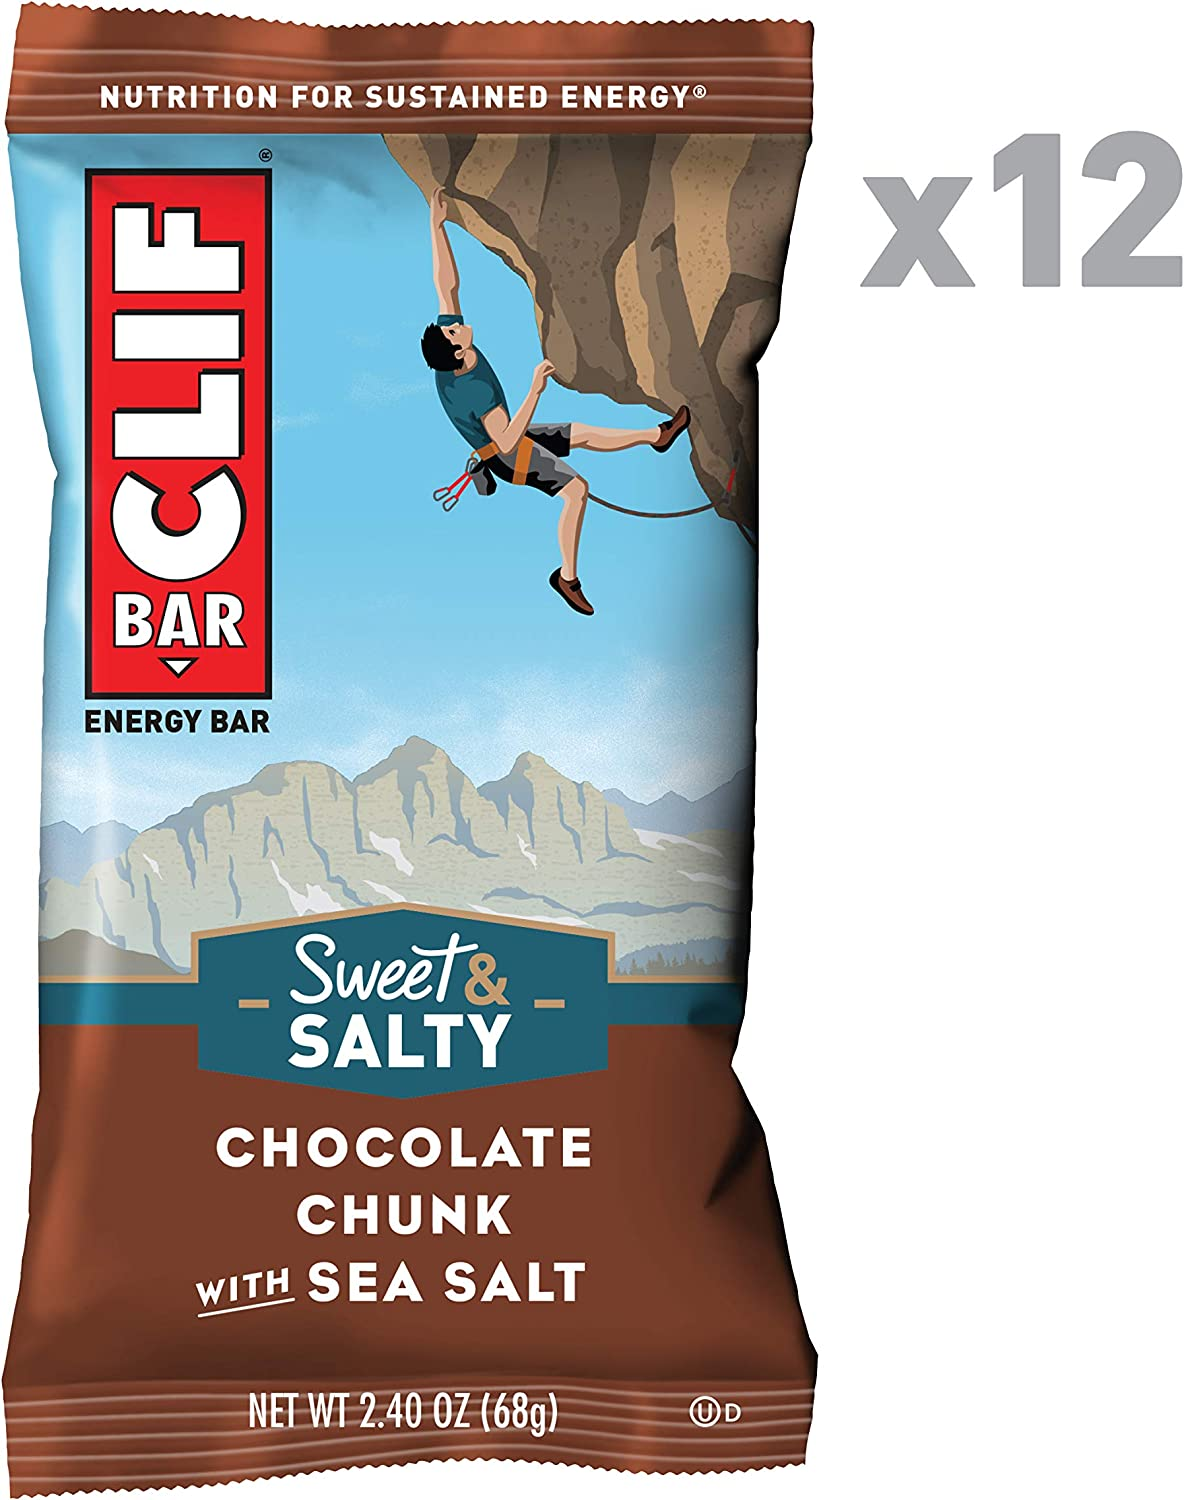 CLIF BAR - Sweet & Salty Energy Bars - Chocolate Chunk with Sea Salt - (2.4 Ounce Protein Bars, 12 Count) (Packaging May Vary)